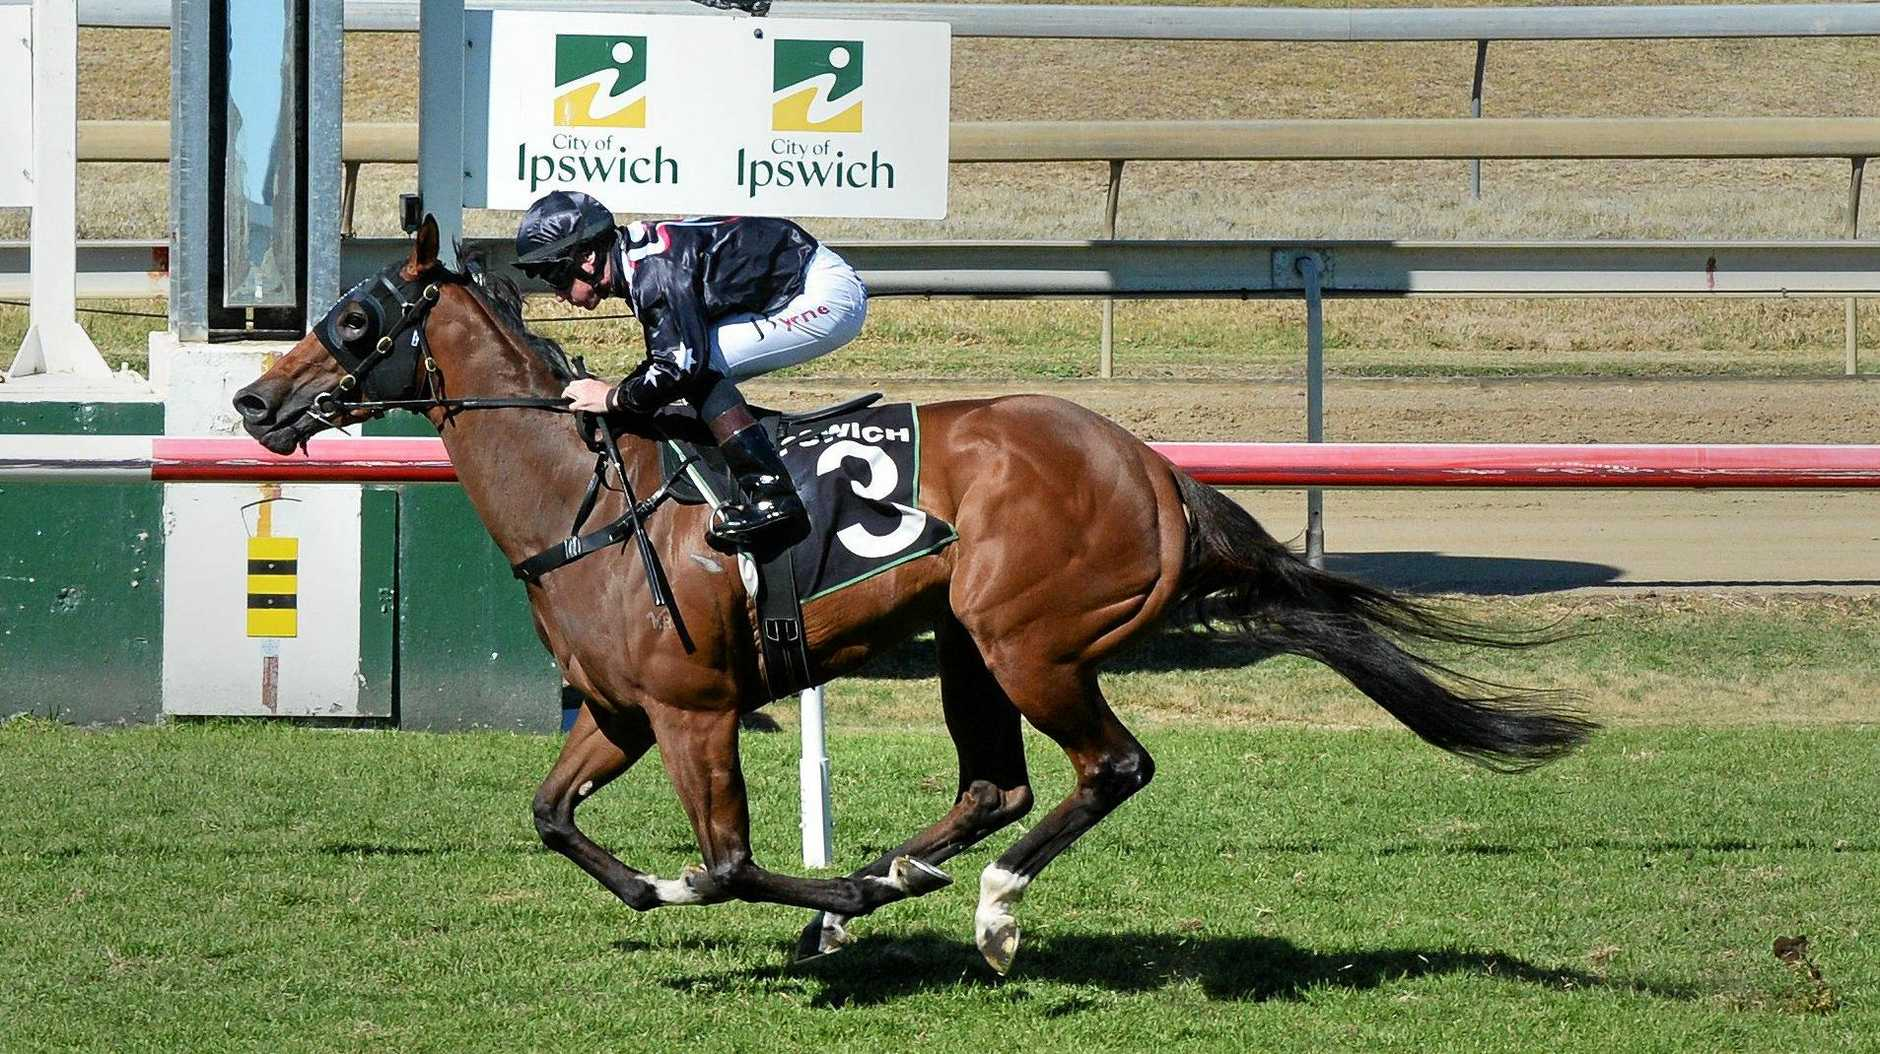 Splitter wins the Follow ITC @Ipswichturfclub race at Ipswich Racetrack on Wednesday.